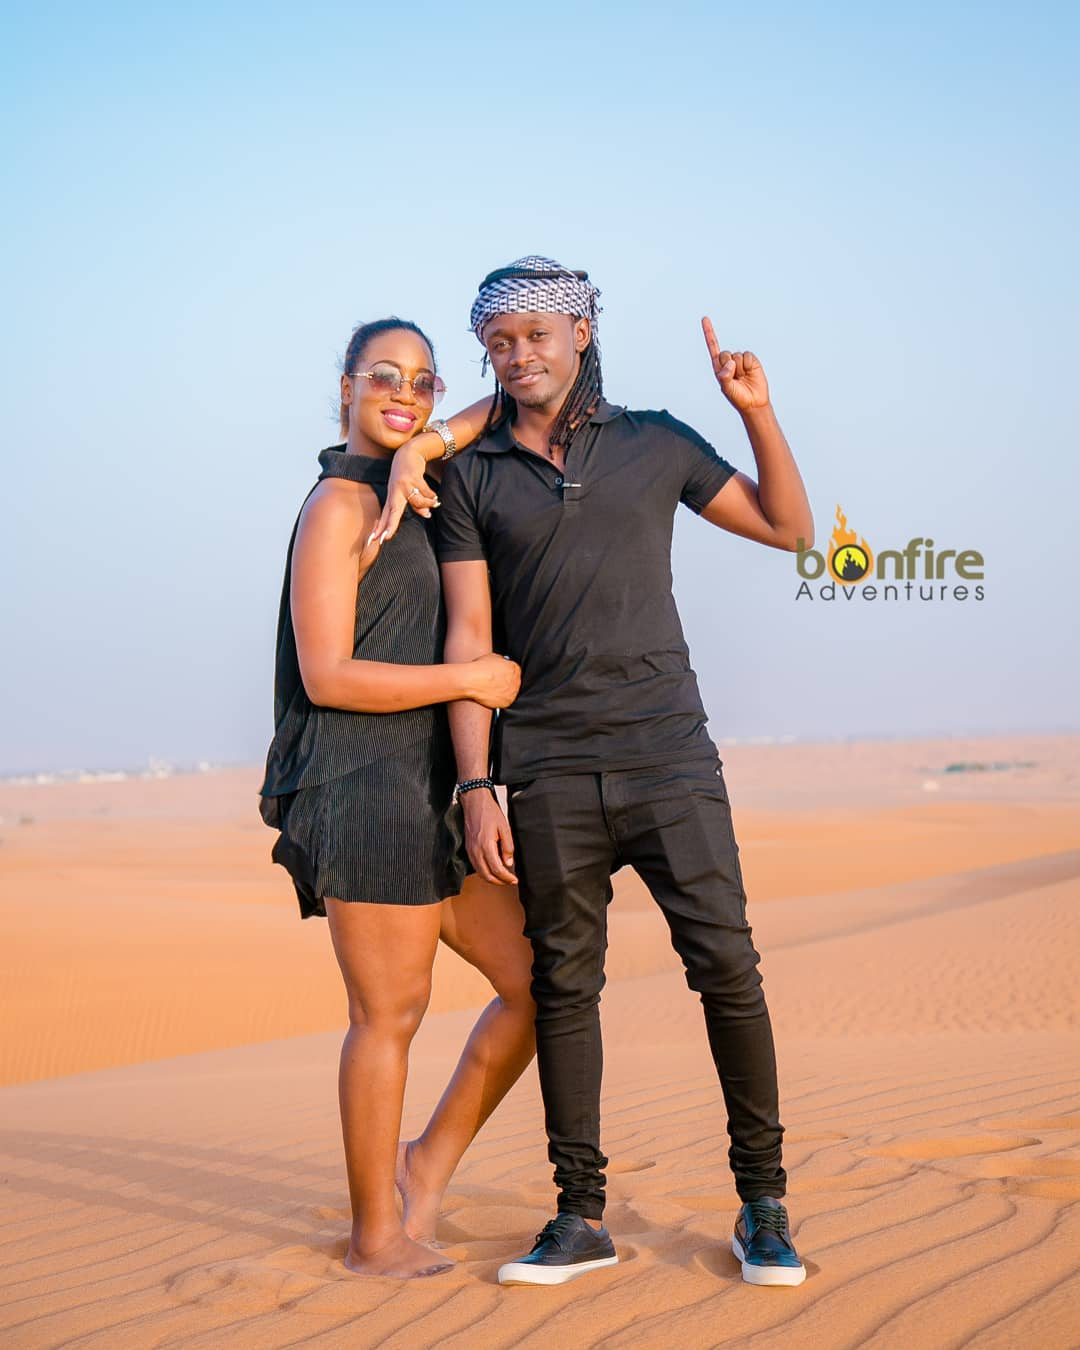 Bahati and Diana Marua - What Bahati and Diana should do to improve their reality show